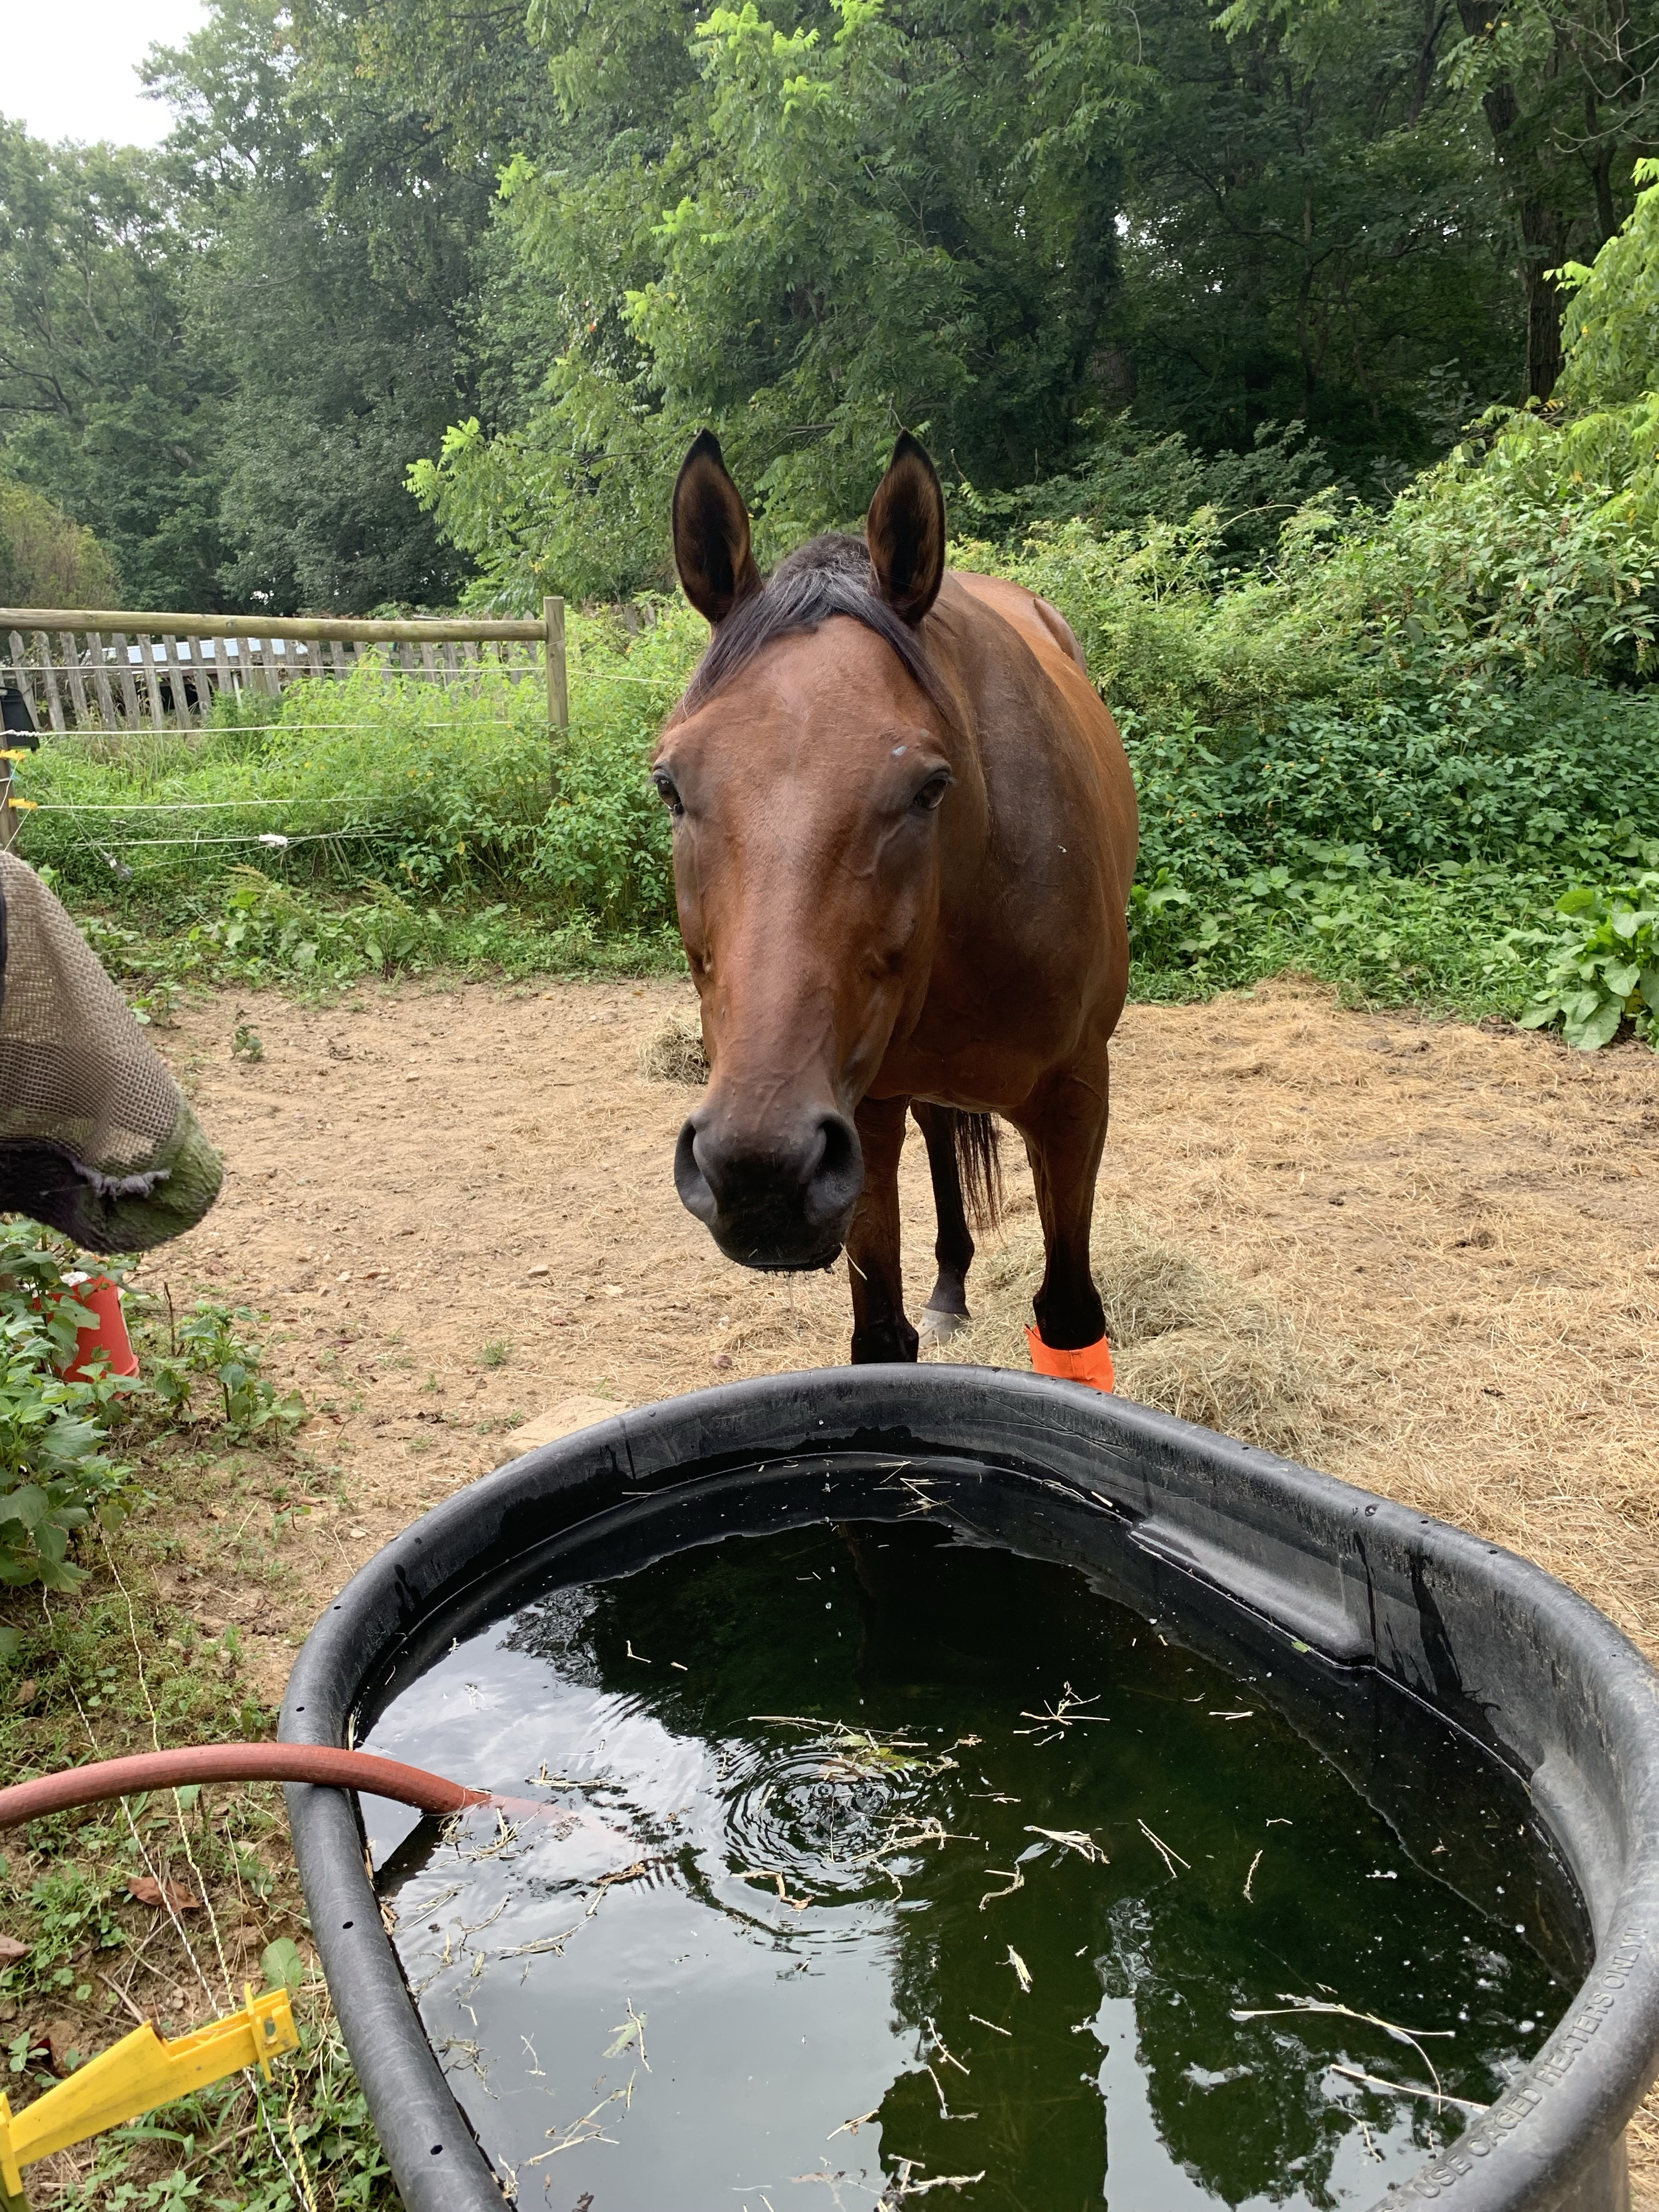 Nay Nay by water trough